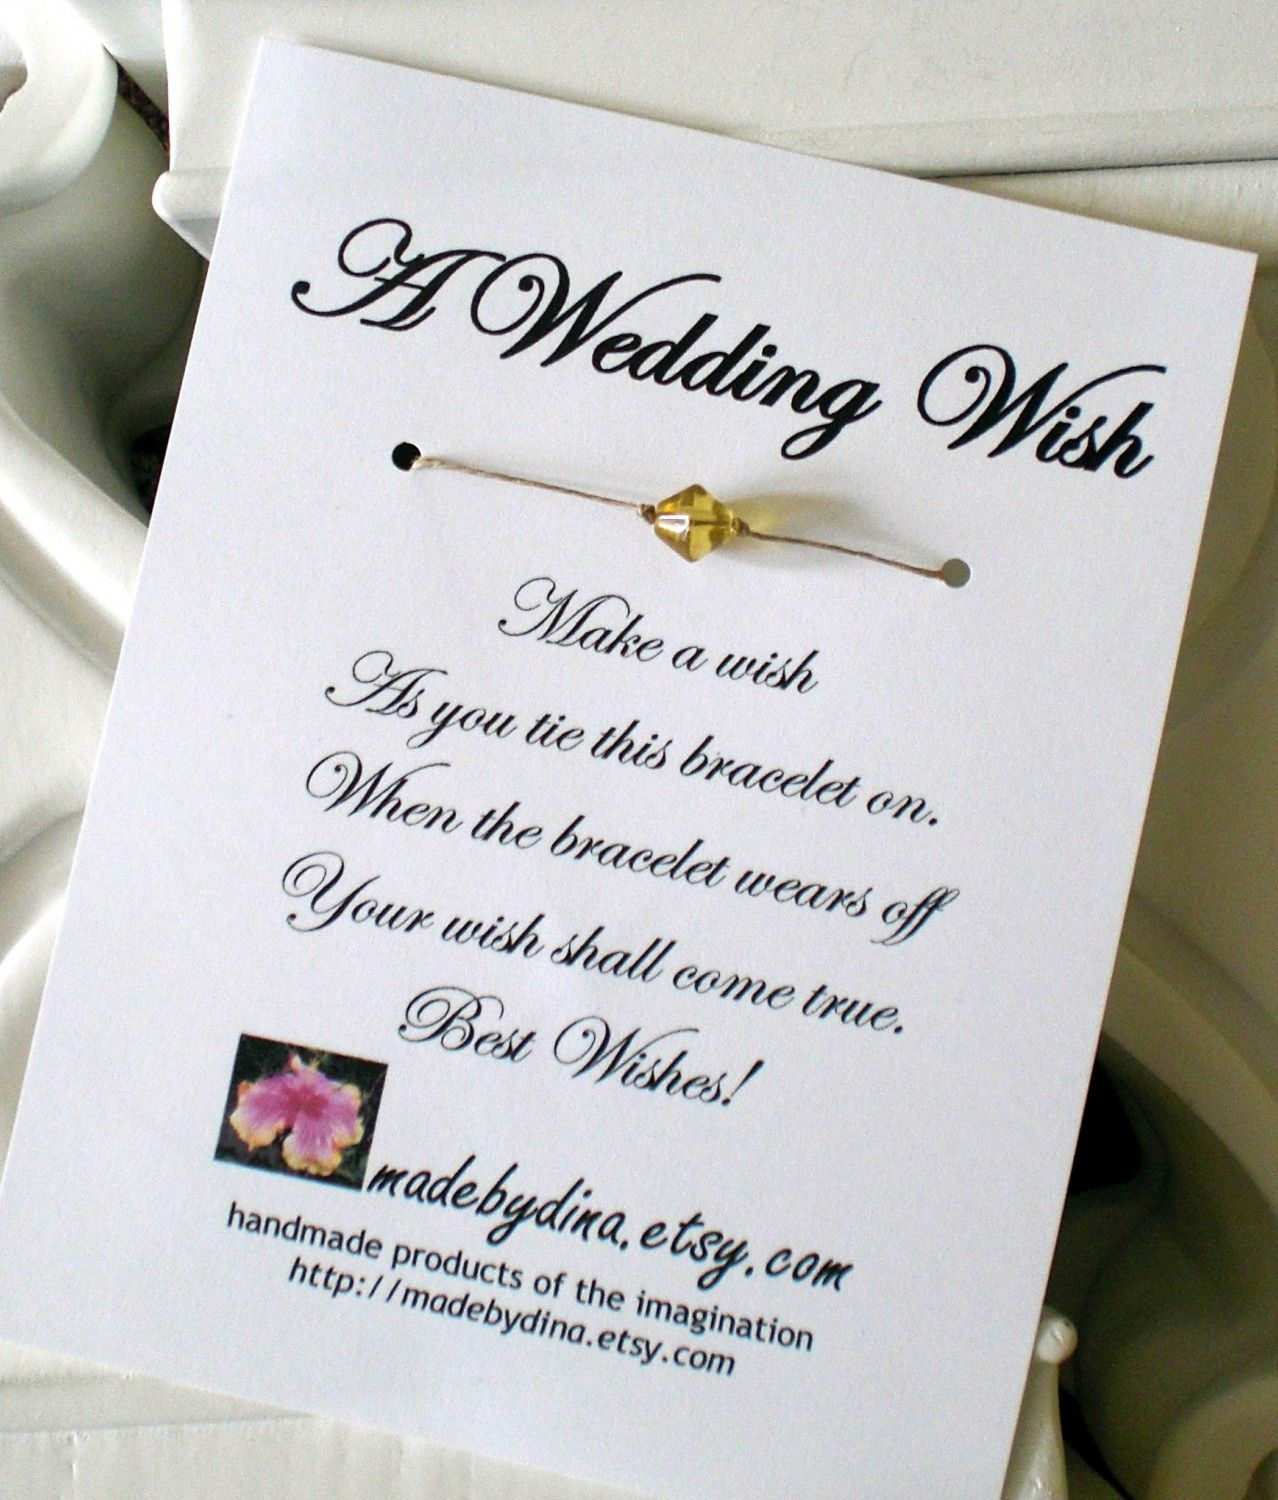 Wedding Gift Message For Best Friend : wedding wishes quotes that you can use wedding quotes wedding wishes ...